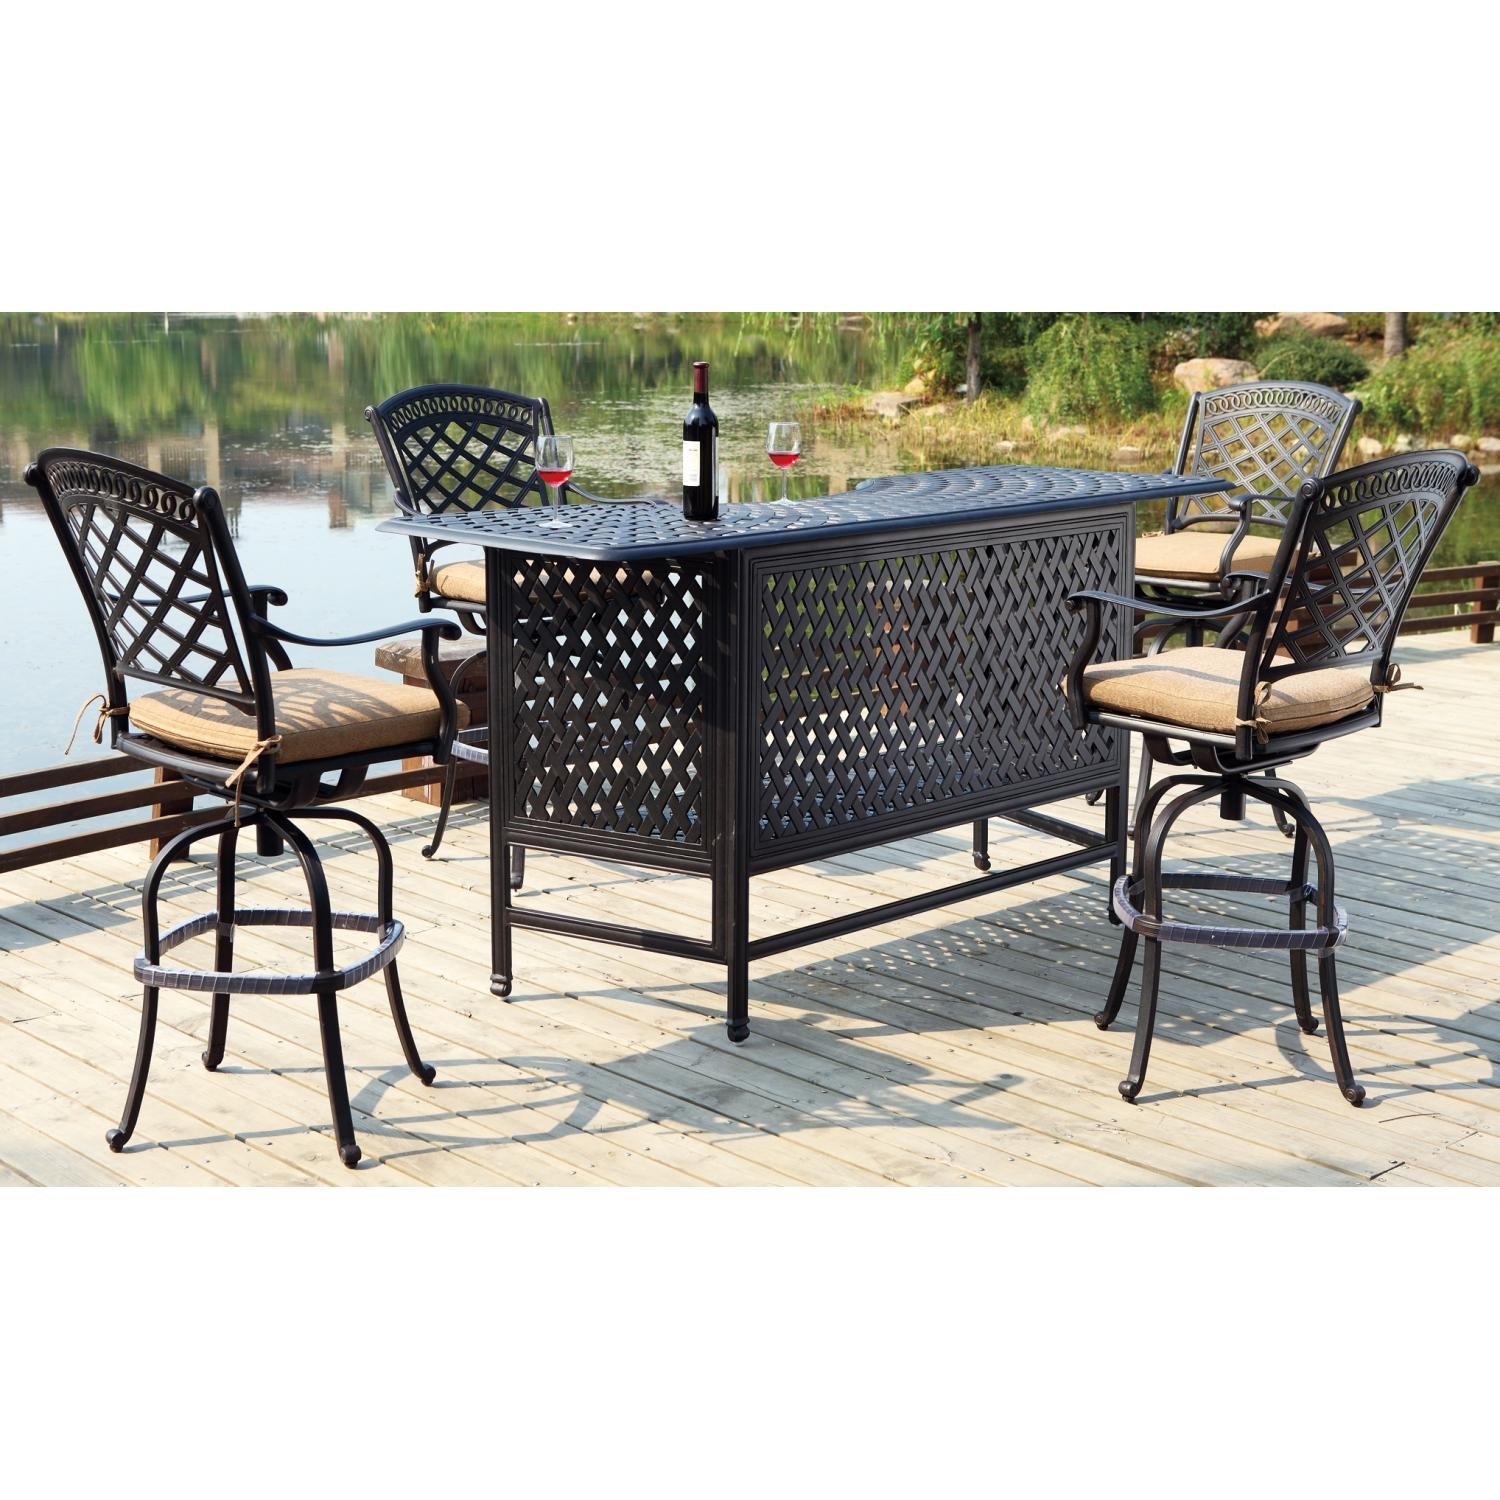 Furniture Outdoor Furniture Bar Party Bar Outdoor Aluminum Patio